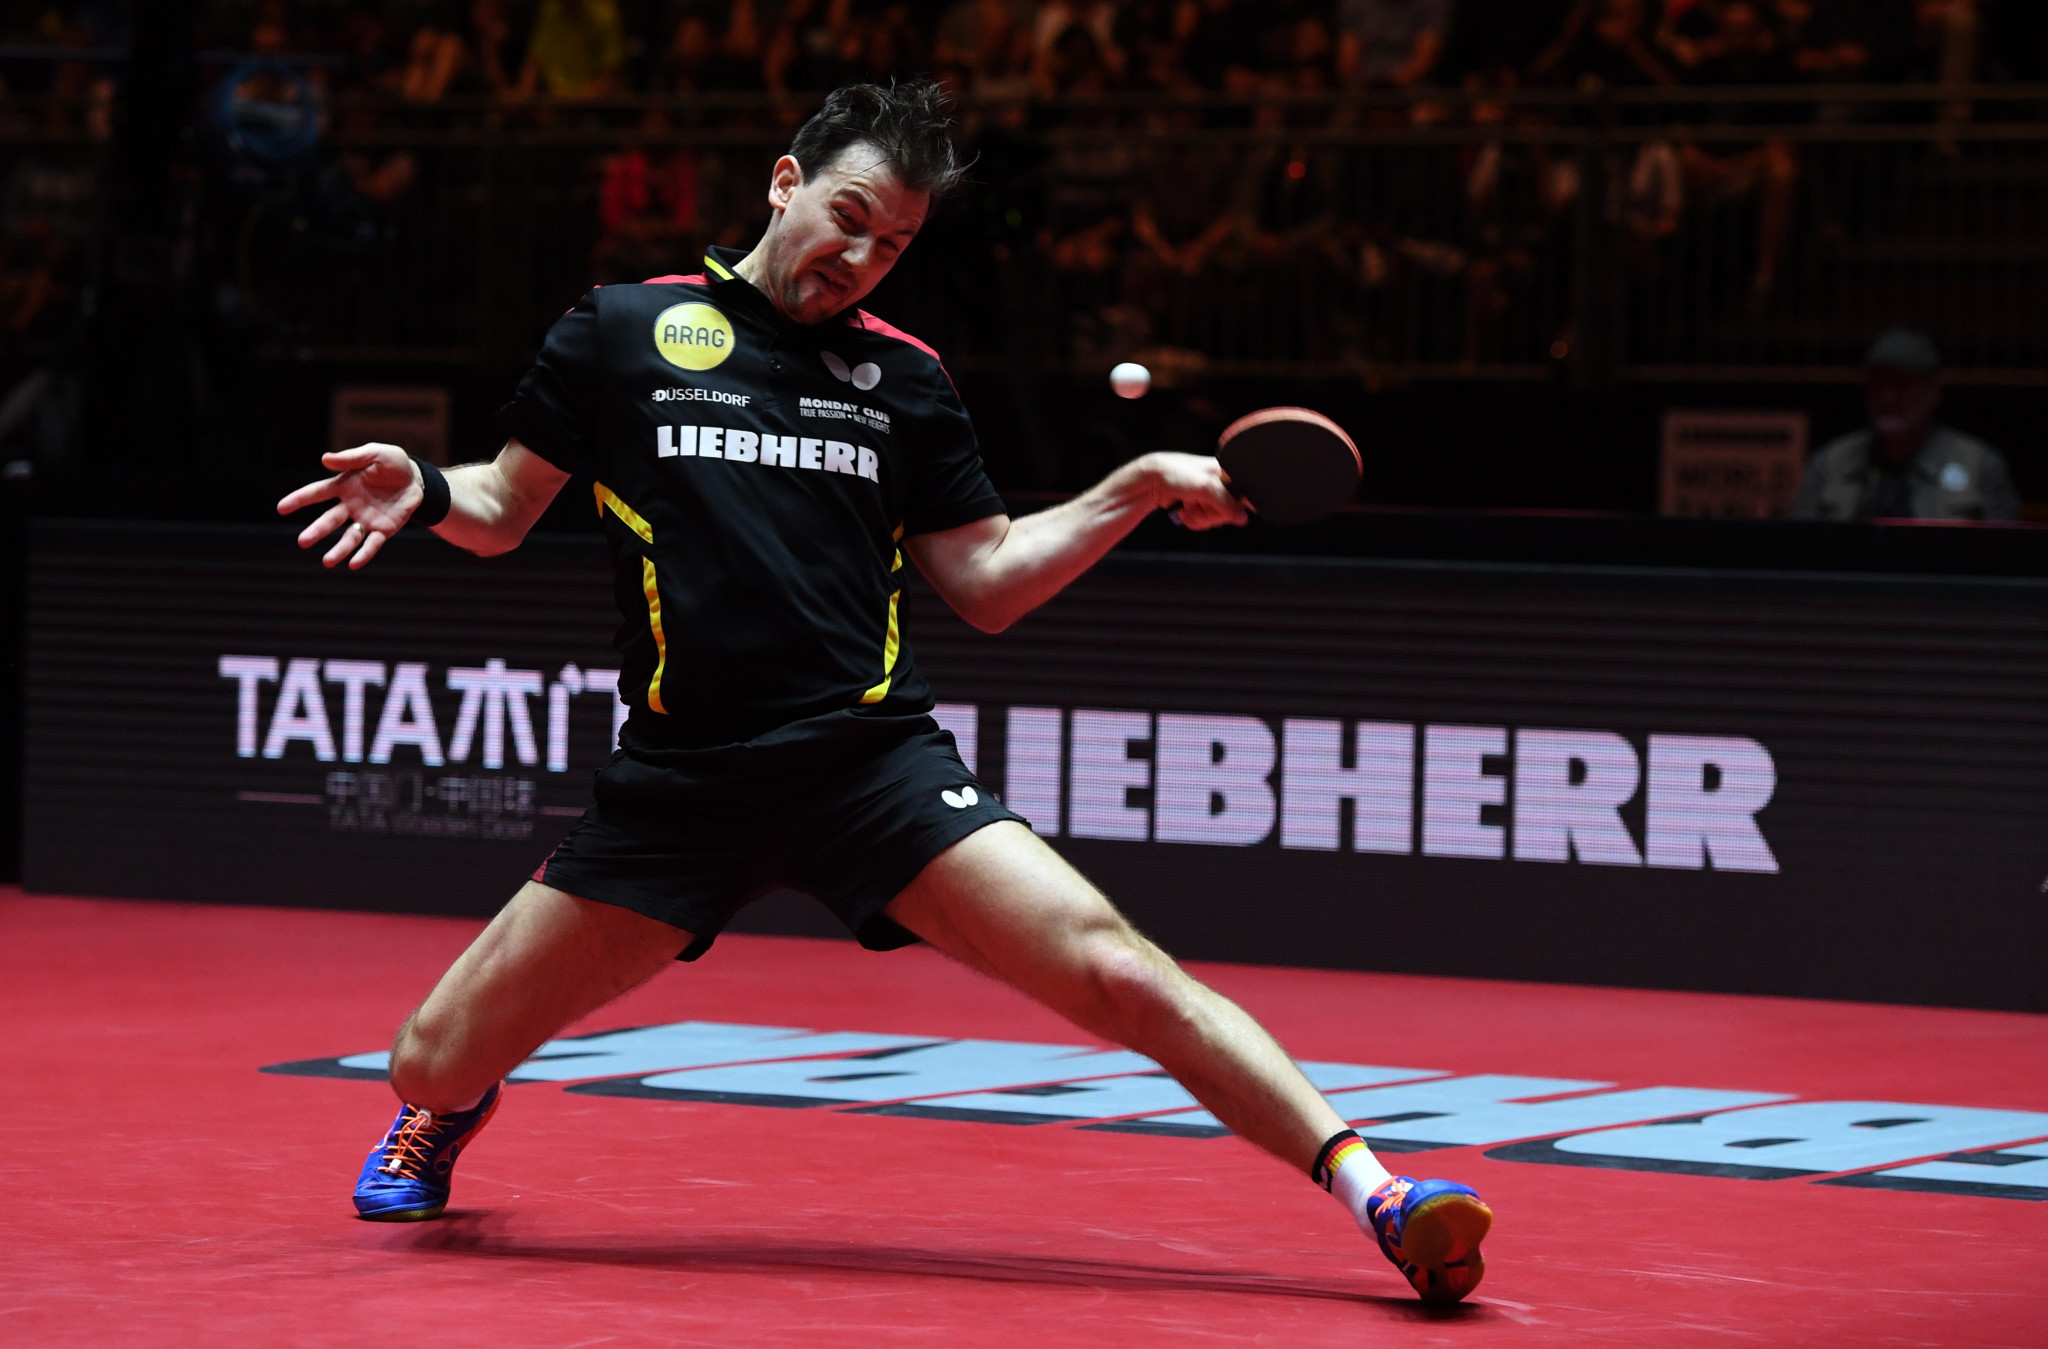 Germany's Timo Boll in action during the 2017 World Championships in Düsseldorf - the last time it was held in the German city ©Getty Images